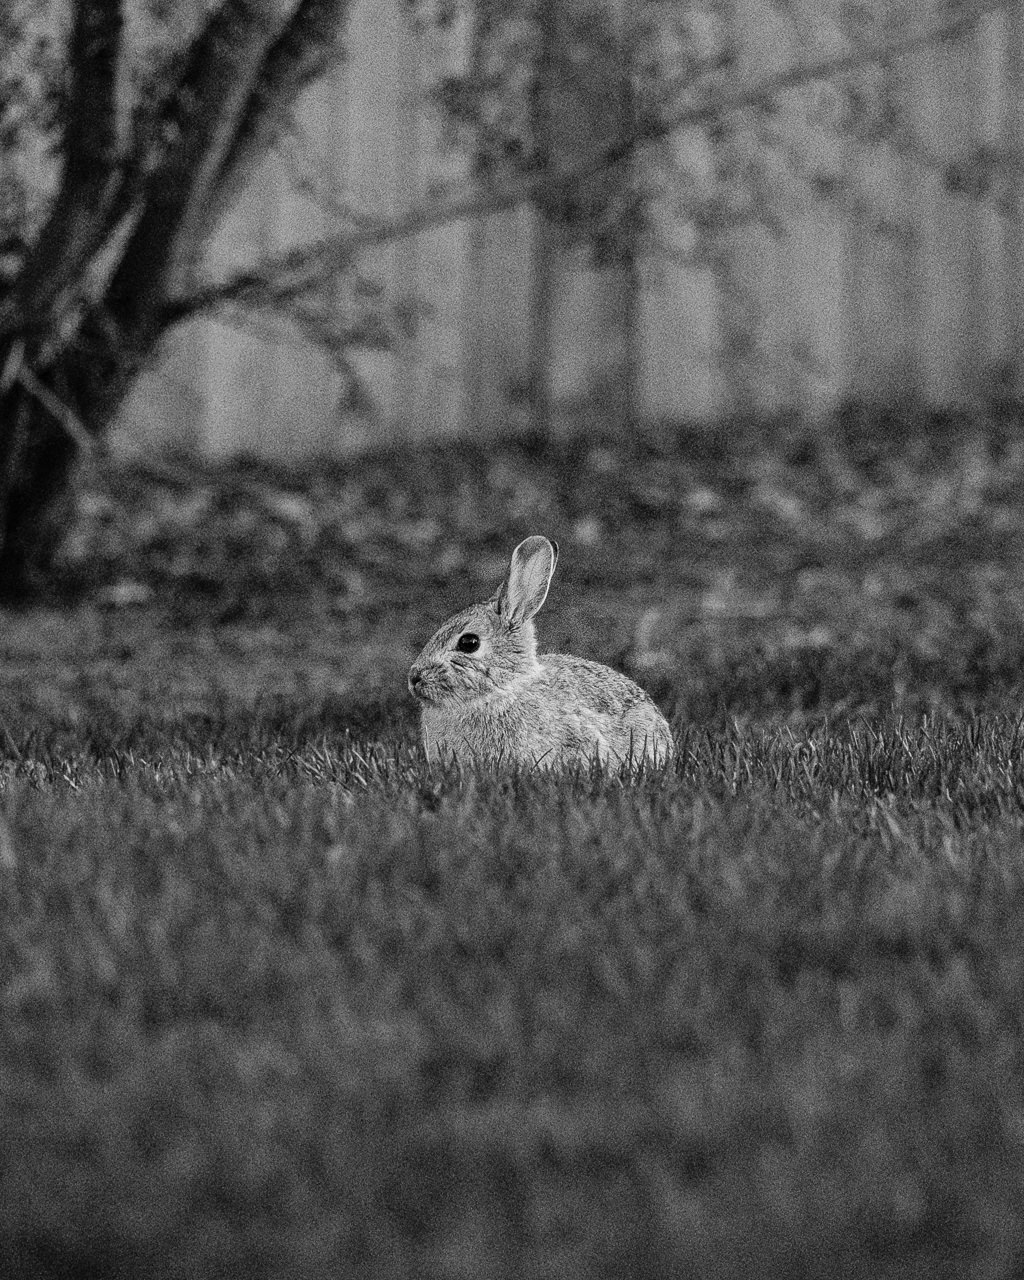 Day 112 - 365 Day B&W Photo Challenge - The bunny rabbits have come out of their winter homes just in time for Easter. - Fuji X-T3, XF 50-140mm f/2.8, Acros R Film Simulation